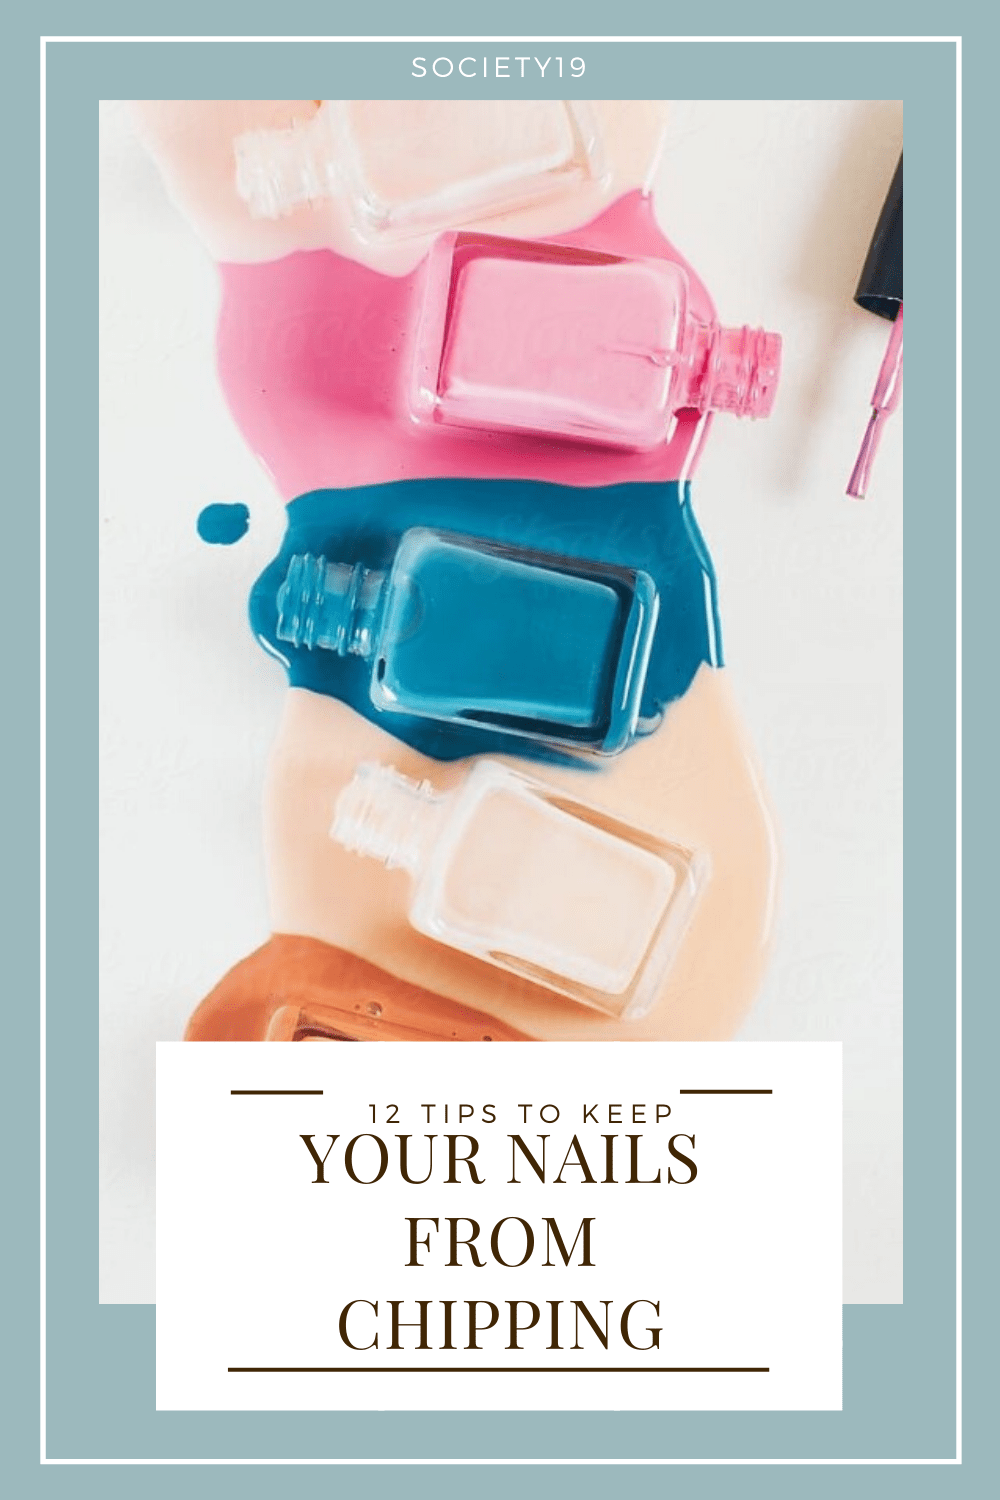 Nails, 12 Tips To Keep Your Nails From Chipping